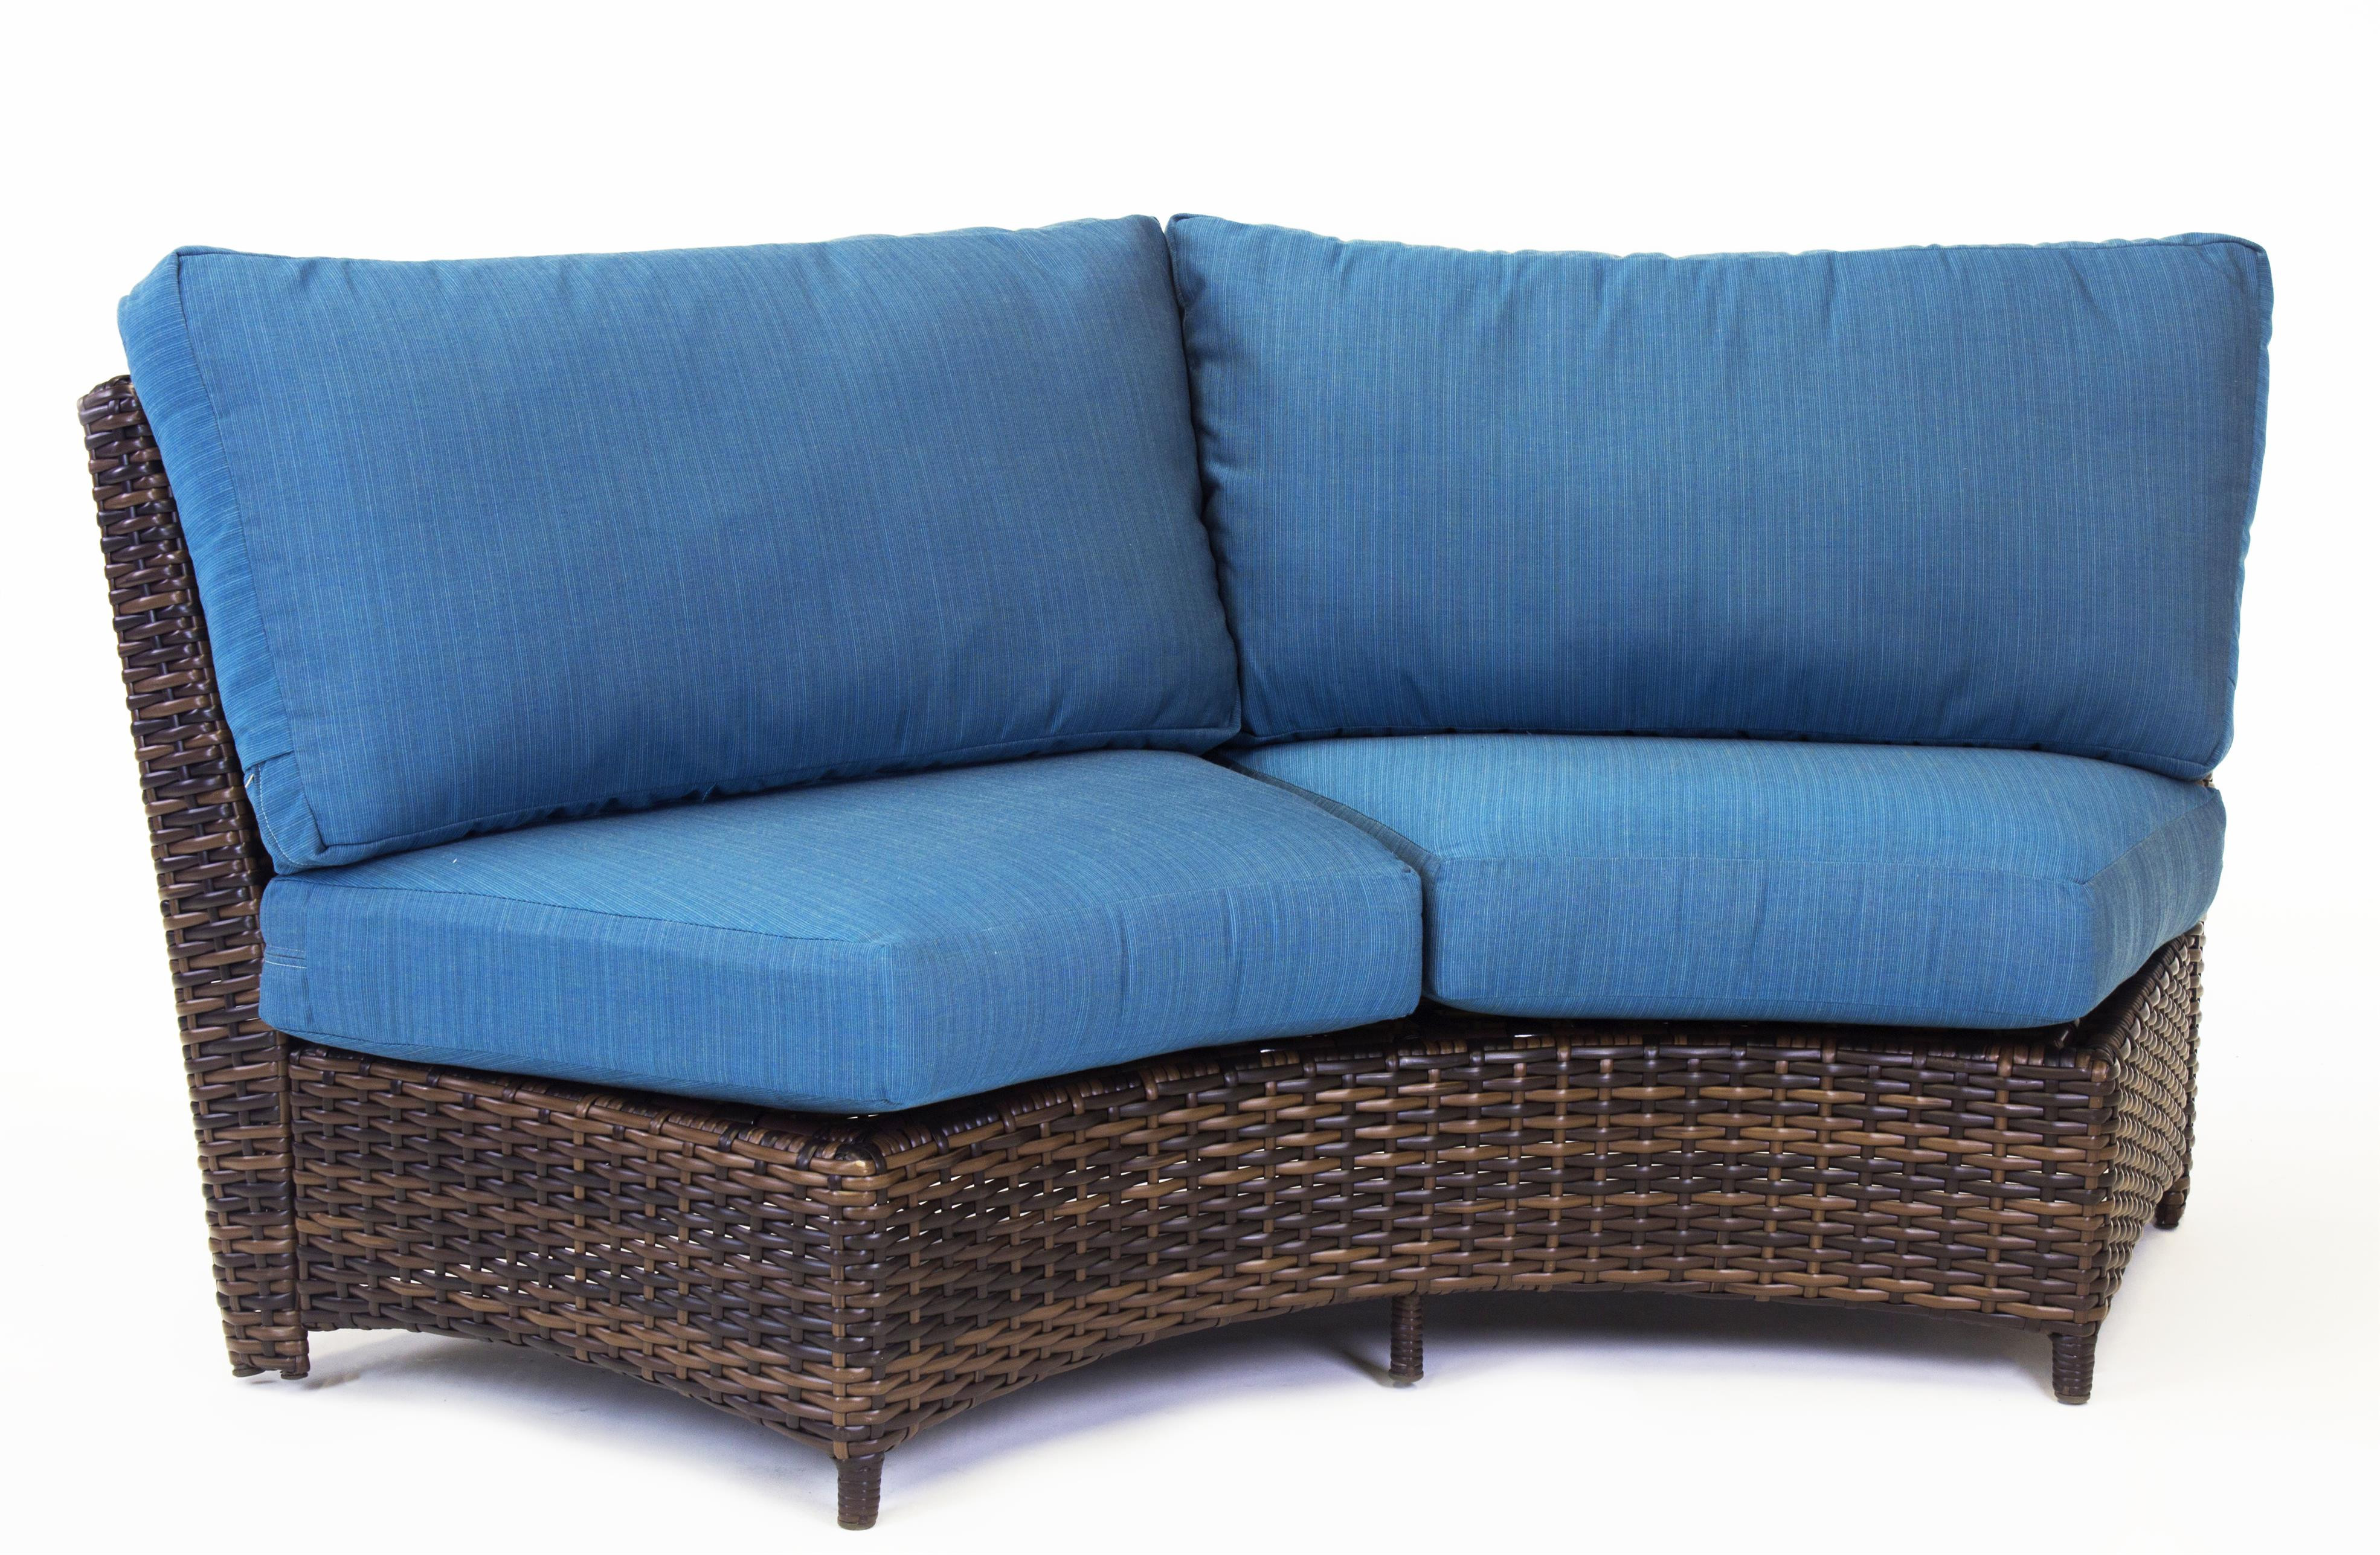 south sea rattan saint tropez wicker curved love seat. Black Bedroom Furniture Sets. Home Design Ideas